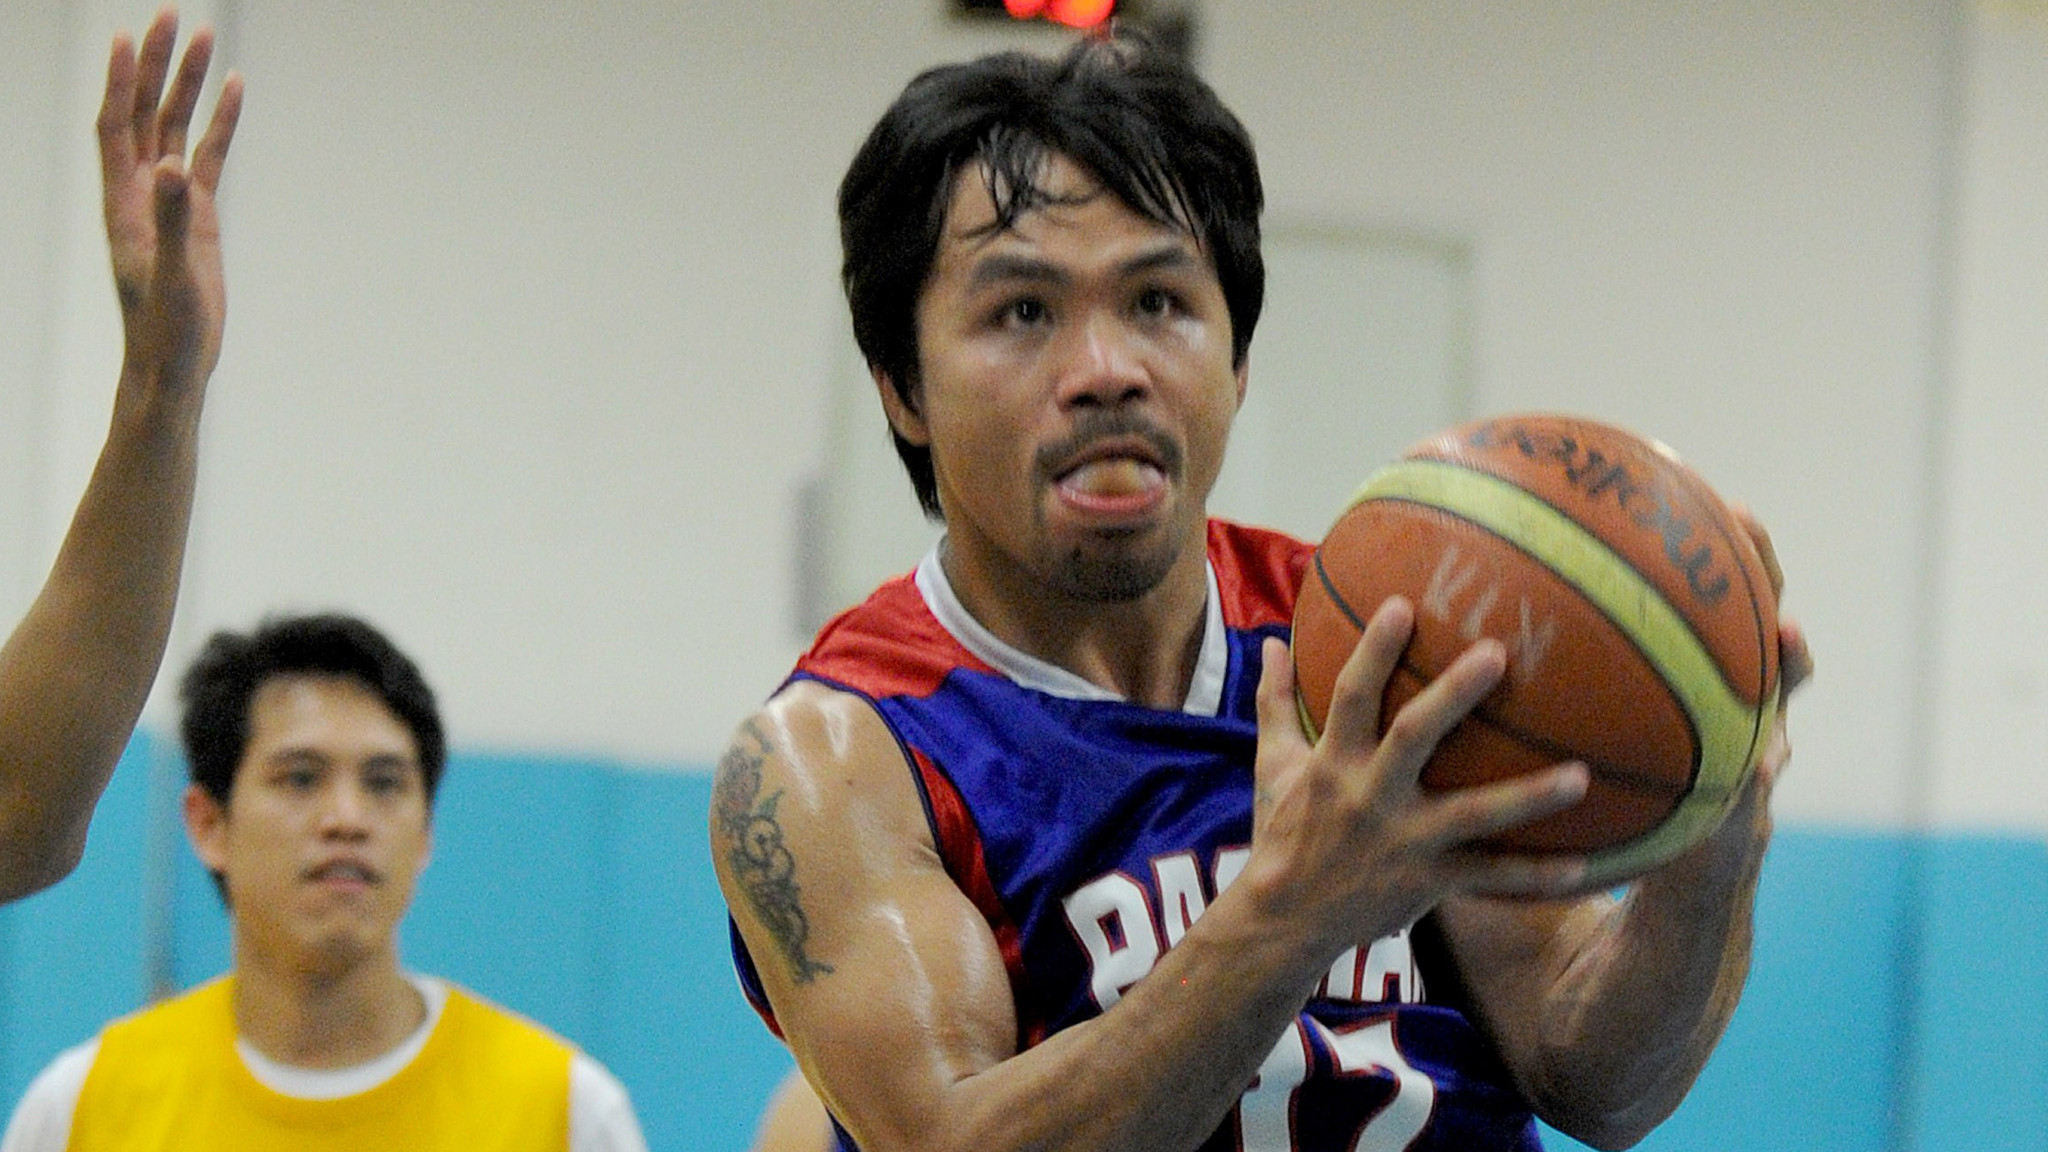 Manny Pacquiao's basketball team drafts Pacquiao - LA Times